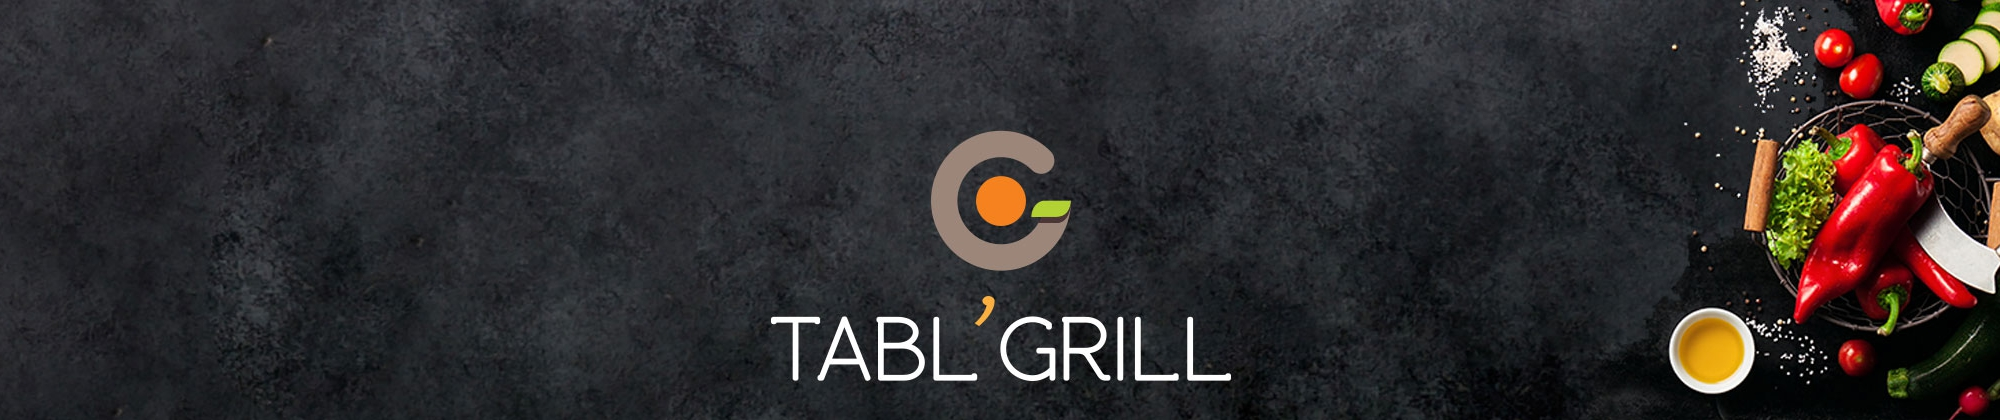 TablGrill_couv